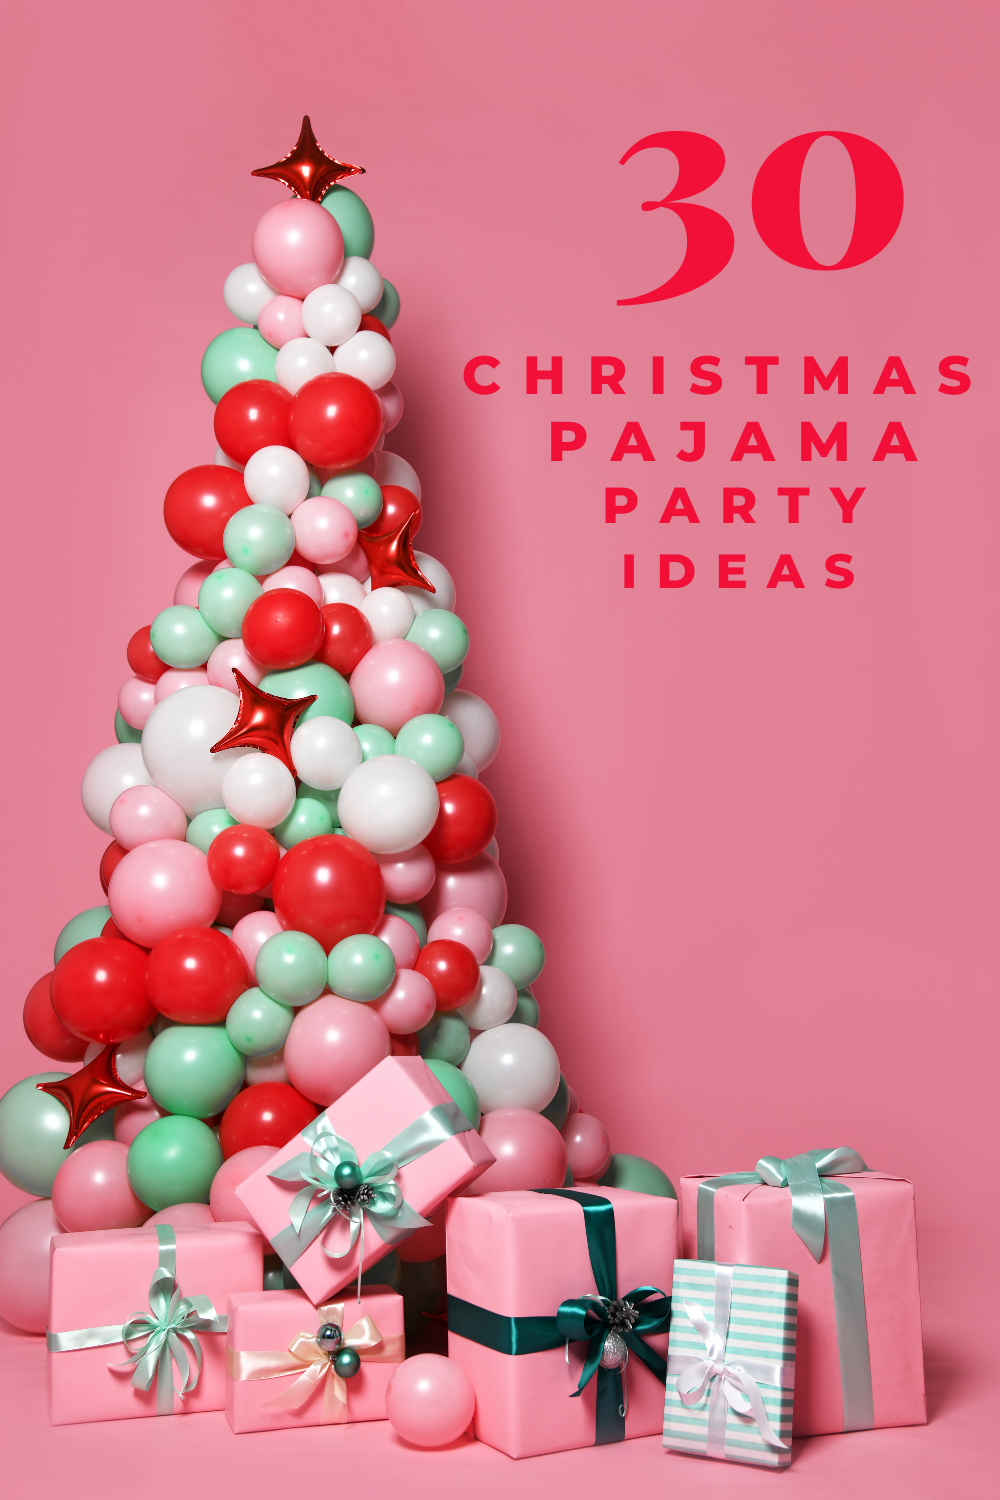 30 Christmas Pajama Party Ideas For The Ultimate Party In 2020 Christmas Pajama Party Fun Christmas Party Games Christmas Party Games